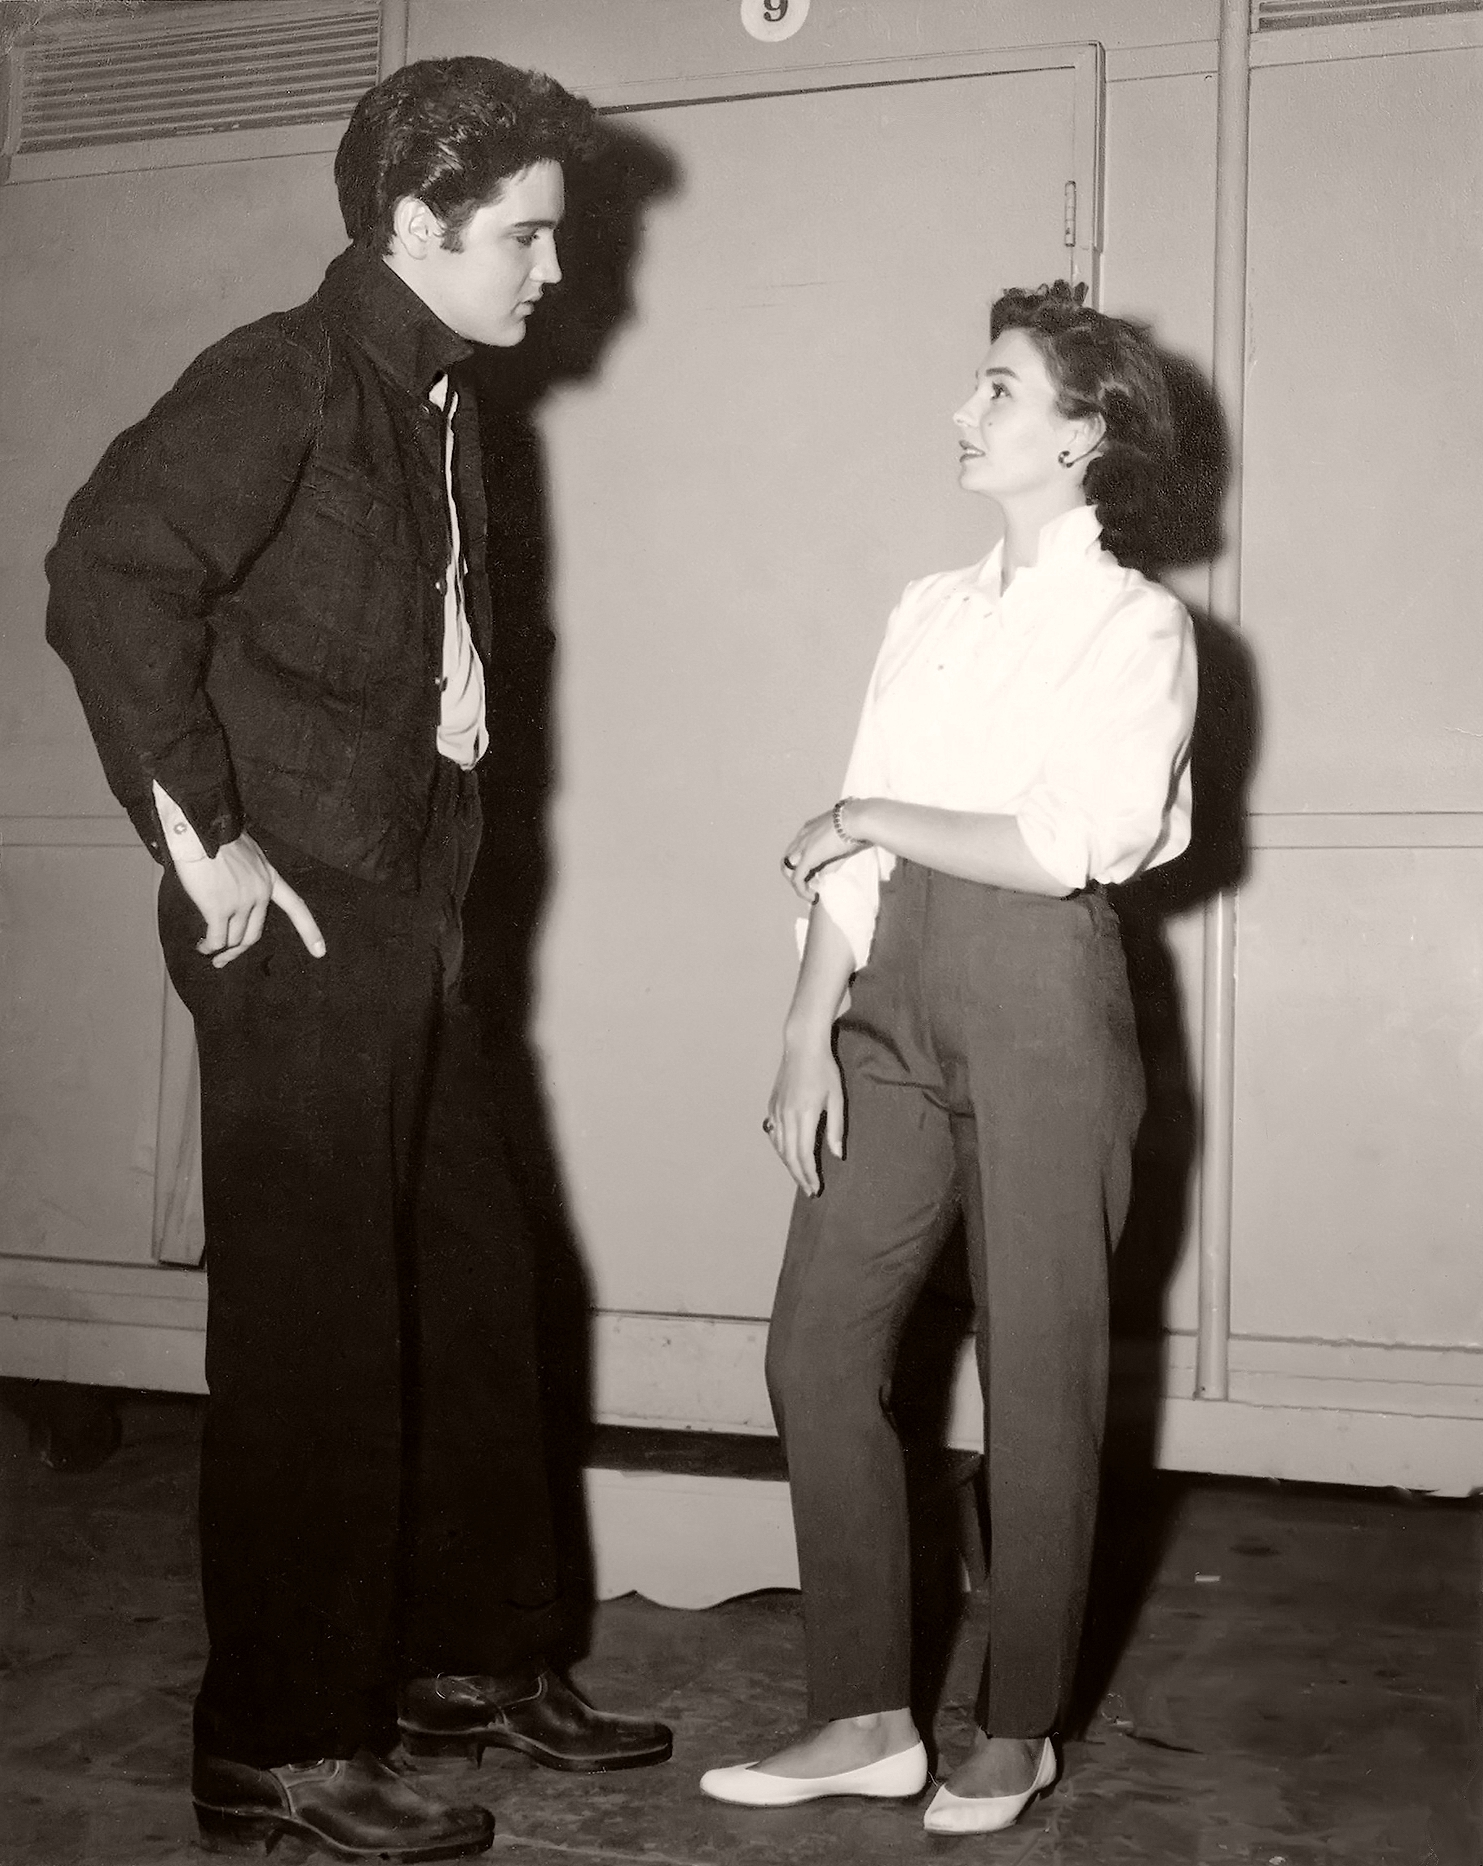 Elvis Presley and Jean Simmons at Metro-Goldwyn-Mayer's studios in Culver City, 1957.  Presley is filming Jailhouse Rock and Simmons stars in This Could be the Night